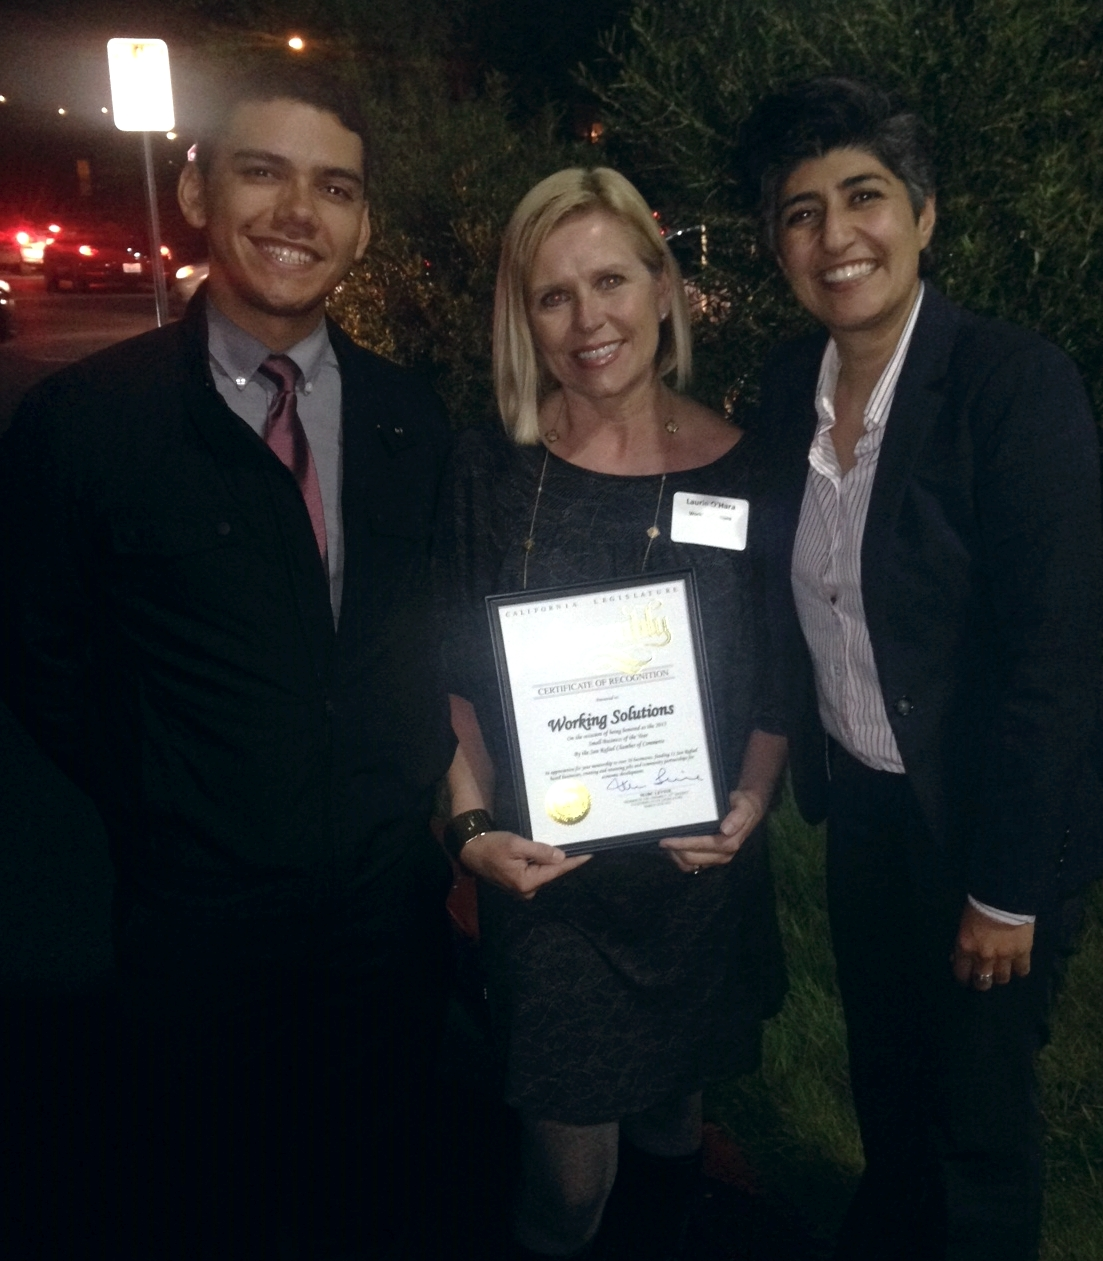 ROberto Hernandez, Laurie O'Hara and Sara Razavi of Working Solutions were thrilled to receive the award on behalf of Working Solutions' staff and Board of Directors